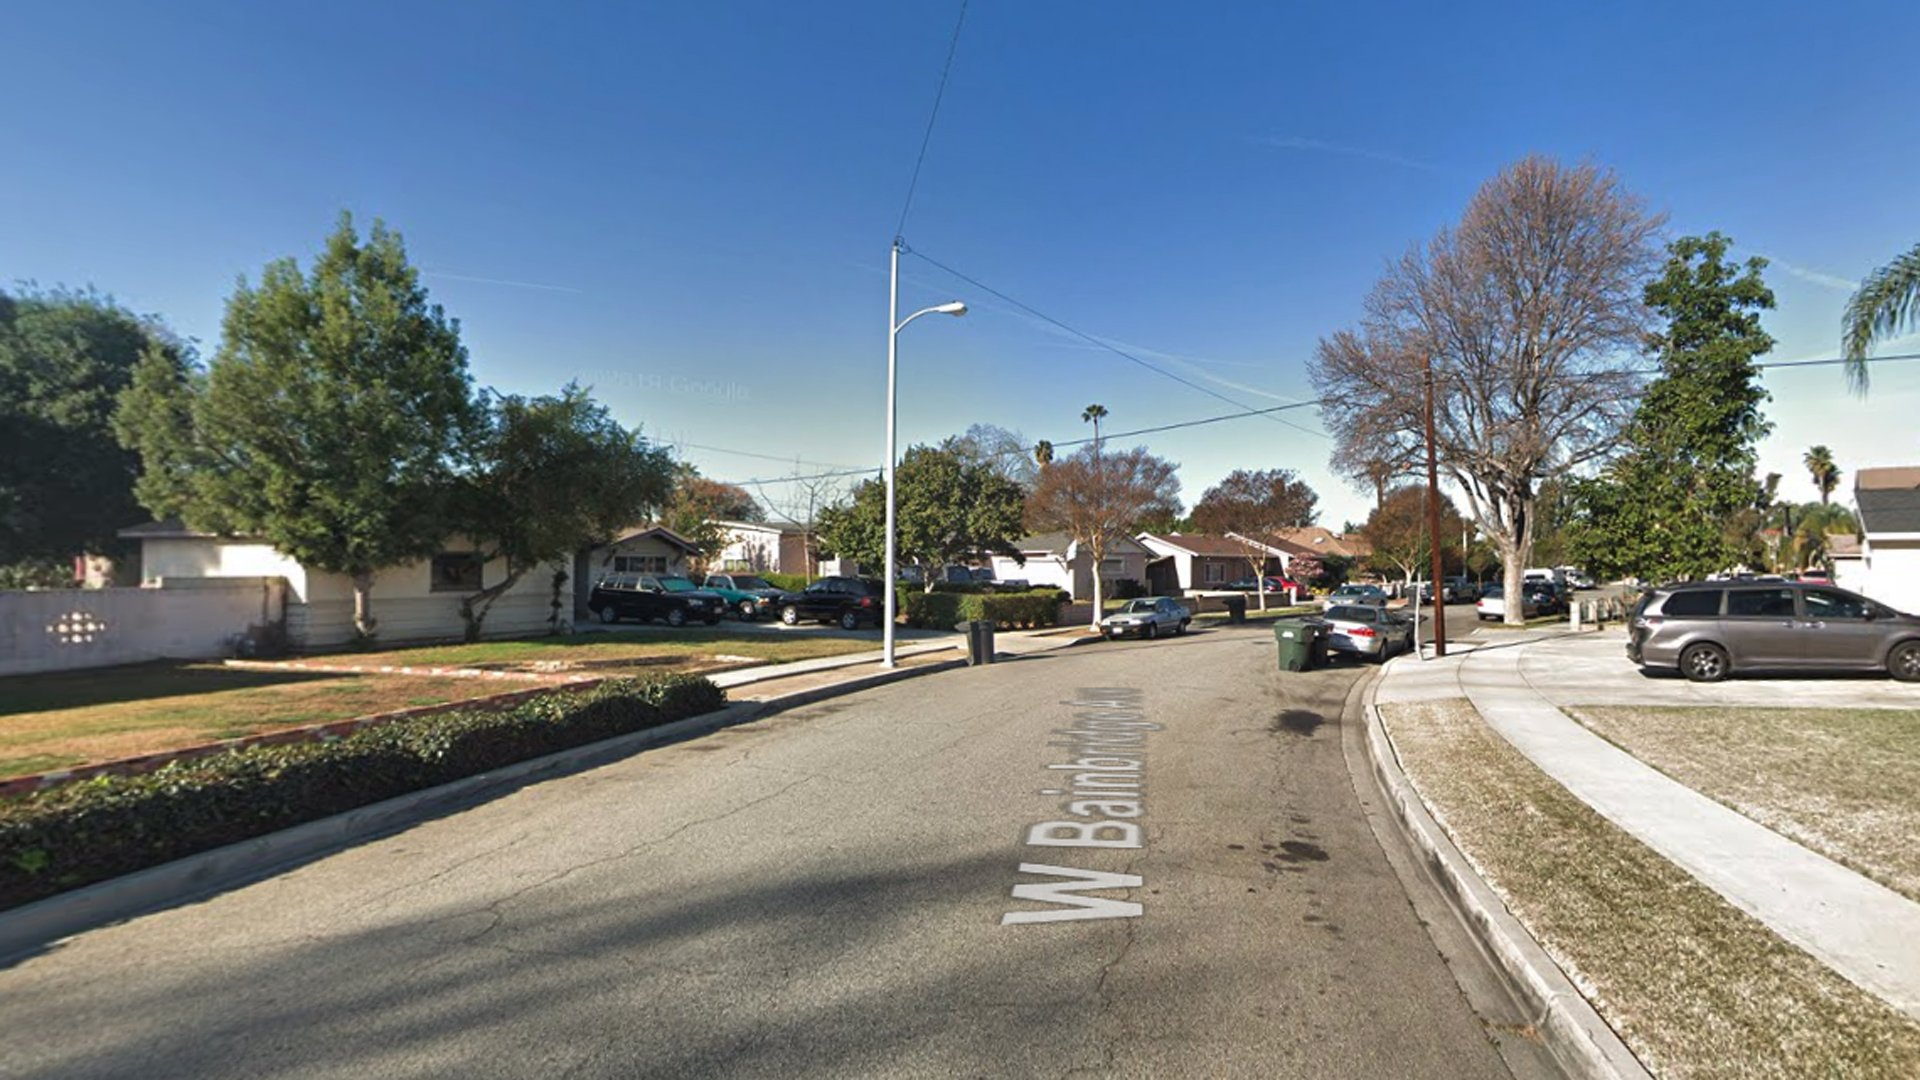 The 1300 block of Bainbridge Avenue in West Covina, as viewed in a Google Street View image.